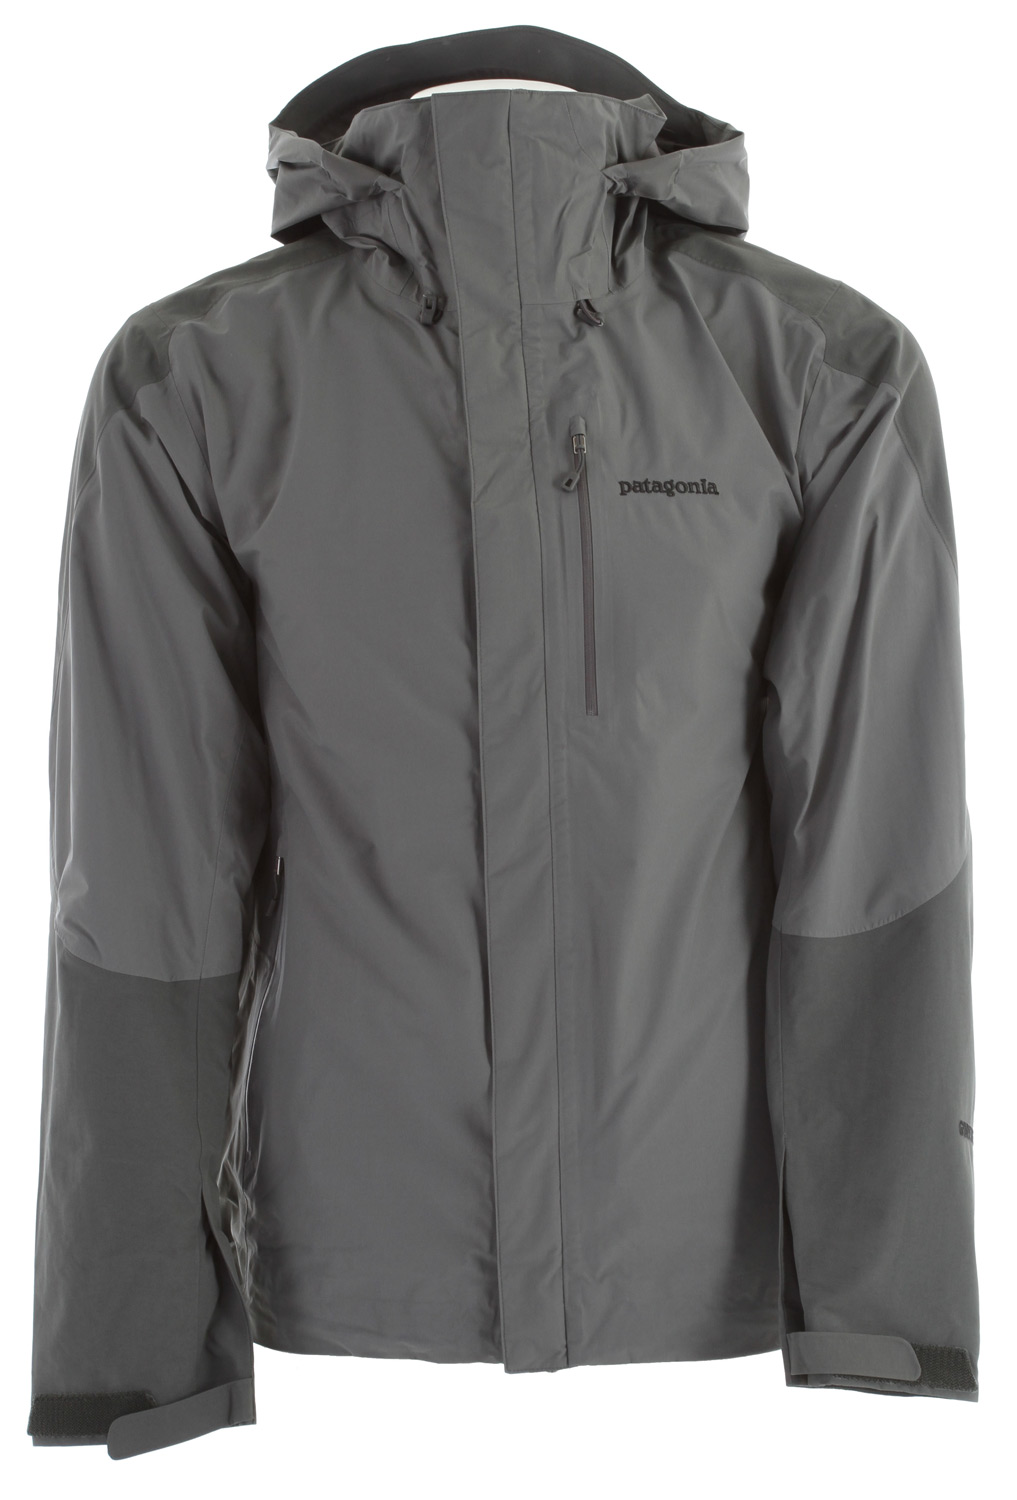 The Piolet Jacket is for the outdoor enthusiast who does it all. The shell jacket, engineered with GORE-TEX Performance Shell uses the most durable nylon face fabrics available. The 2-layer construction uses a GORE-TEX membrane, which is bonded to the outer material and protected on the inside by a separate lining for better wear, greater comfort, and waterproof/breathable protectionKey Features of the Patagonia Piolet Jacket: 2-layer nylon GORE-TEX Performance Shell Helmet-compatible, 2-way-adjustable hood with laminated visor for optimal visibility in bad conditions Touch Point System embeds cord locks in the hood and hem for quick adjustments to seal out rain and snow (patented) Modified Y-Joint sleeve construction for overhead mobility without jacket lifting Pockets: Harness- and pack-compatible pocket configuration and pit zips feature Slim Zip installation with watertight, coated zippers for reduced zipper bulk and weight; internal zippered security pocket Cuffs have low-profile closure with pleated gusset Regular fit (22.3 oz) 632 g Fabric: Shell: 2.7-oz 40-denier GORE-TEX Performance Shell 100% nylon. Reinforcements: 4.3-oz 70-denier GORE-TEX Performance Shell 100% nylon - $208.95